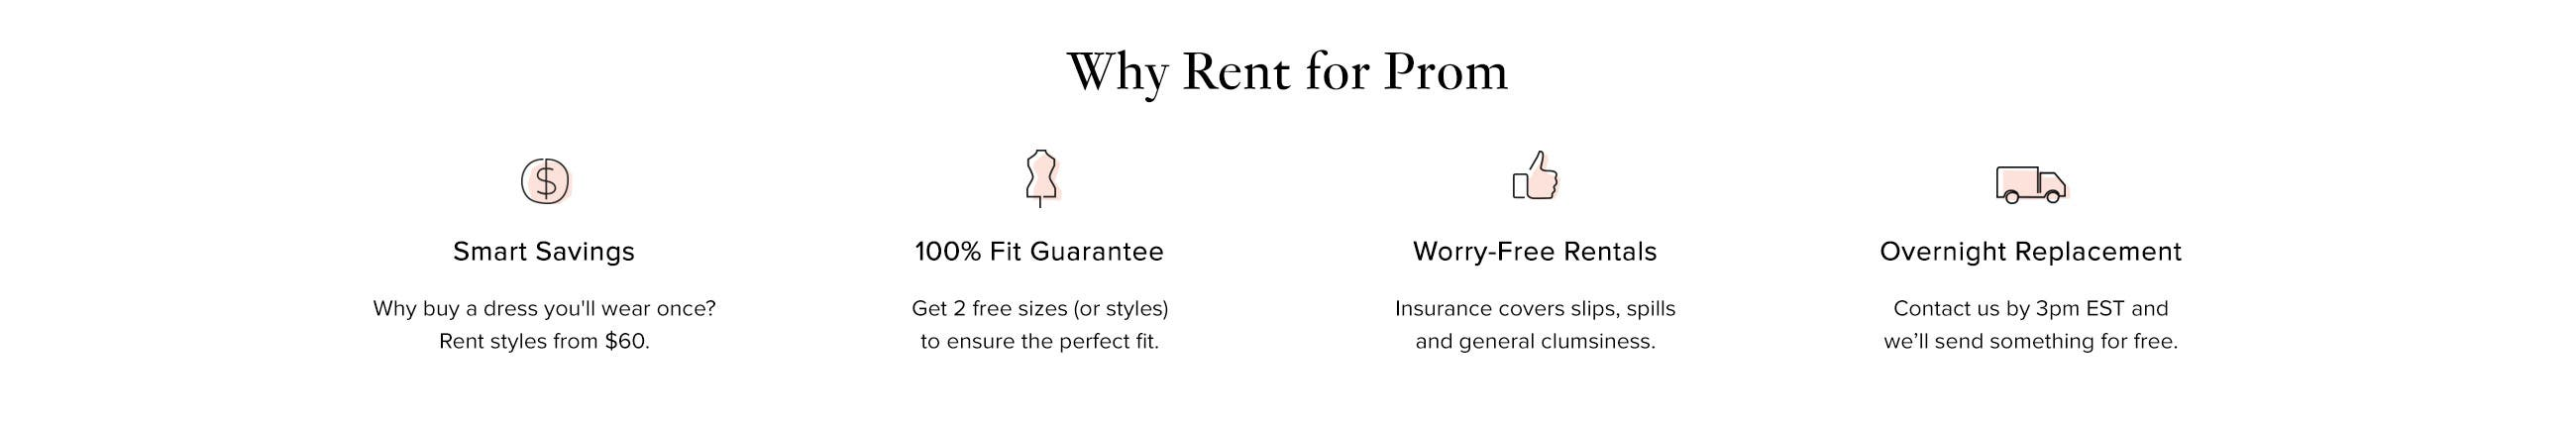 Why Rent for Prom? Smart Savings. 100% Fit Guarantee. Worry-Free Rentals. Overnight Replacement.